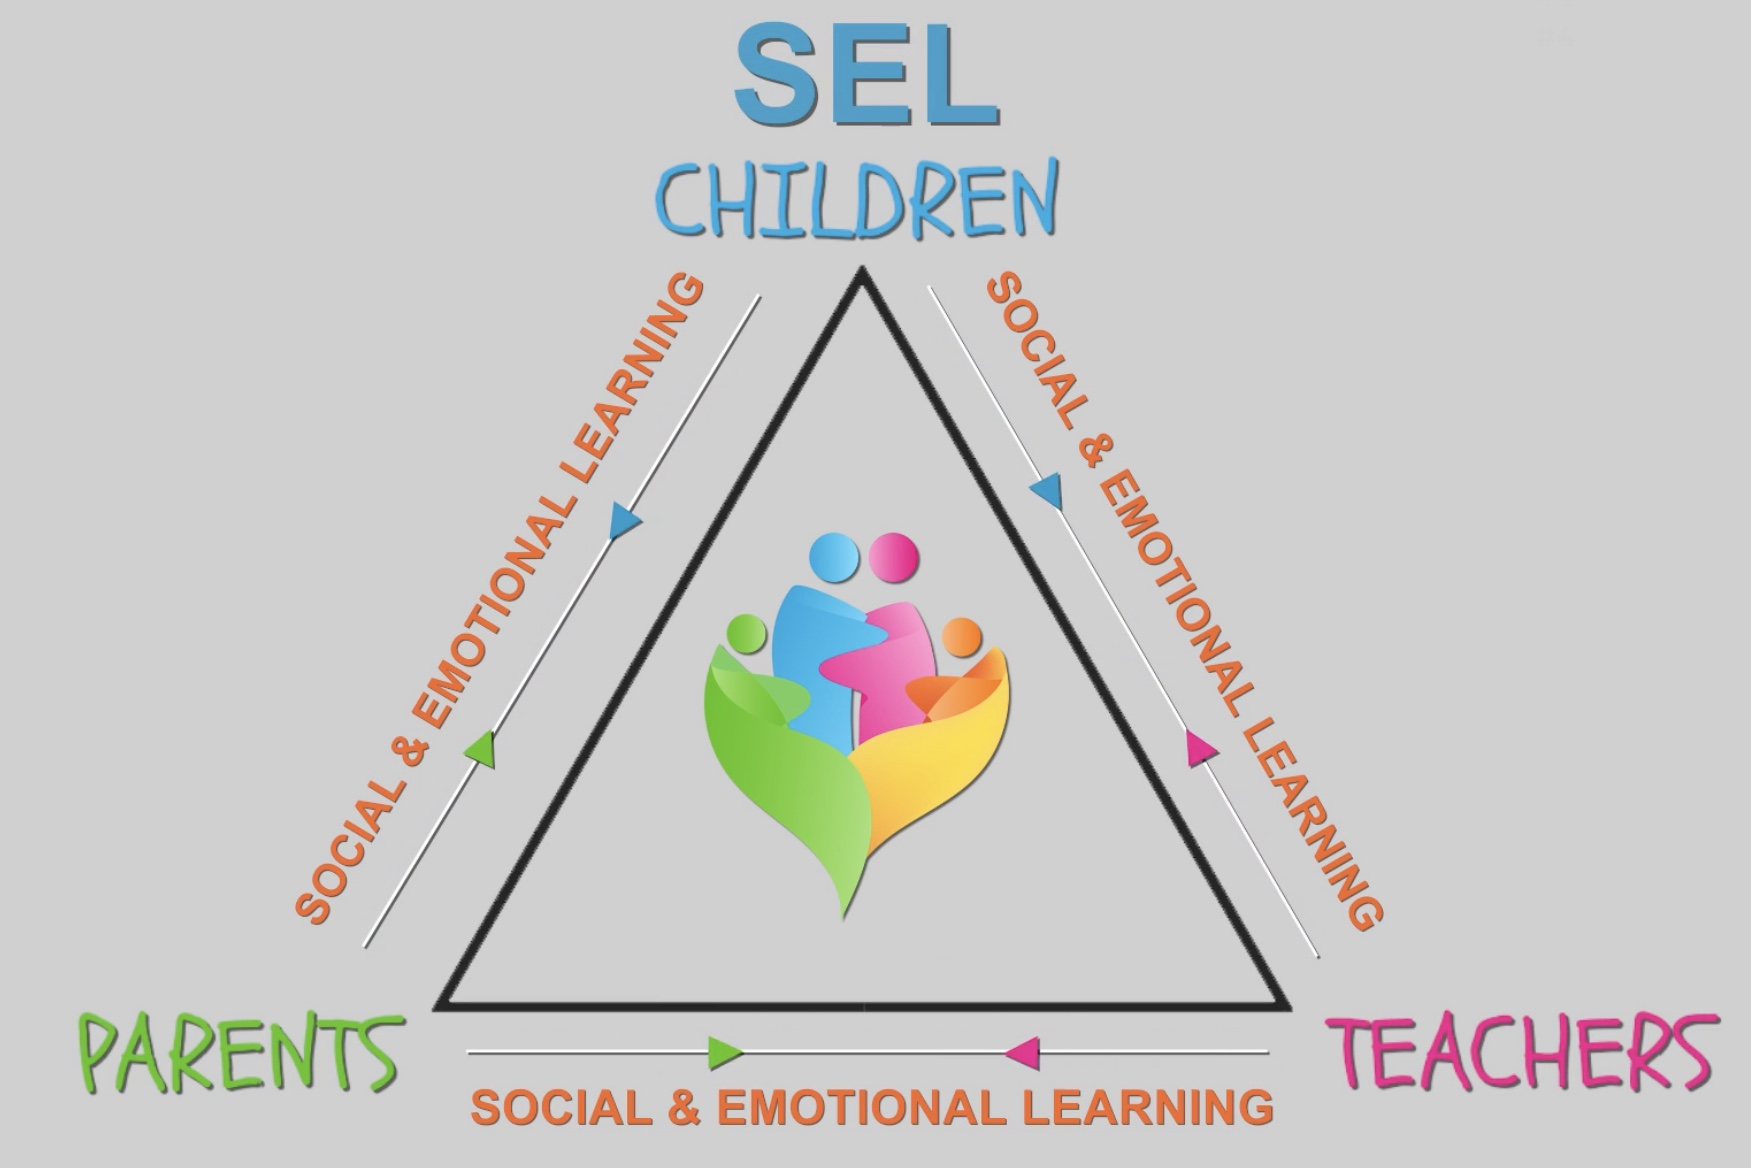 How To Implement Social And Emotional >> Hug The Moment For Social Emotional Learning Sel Gifted For Good